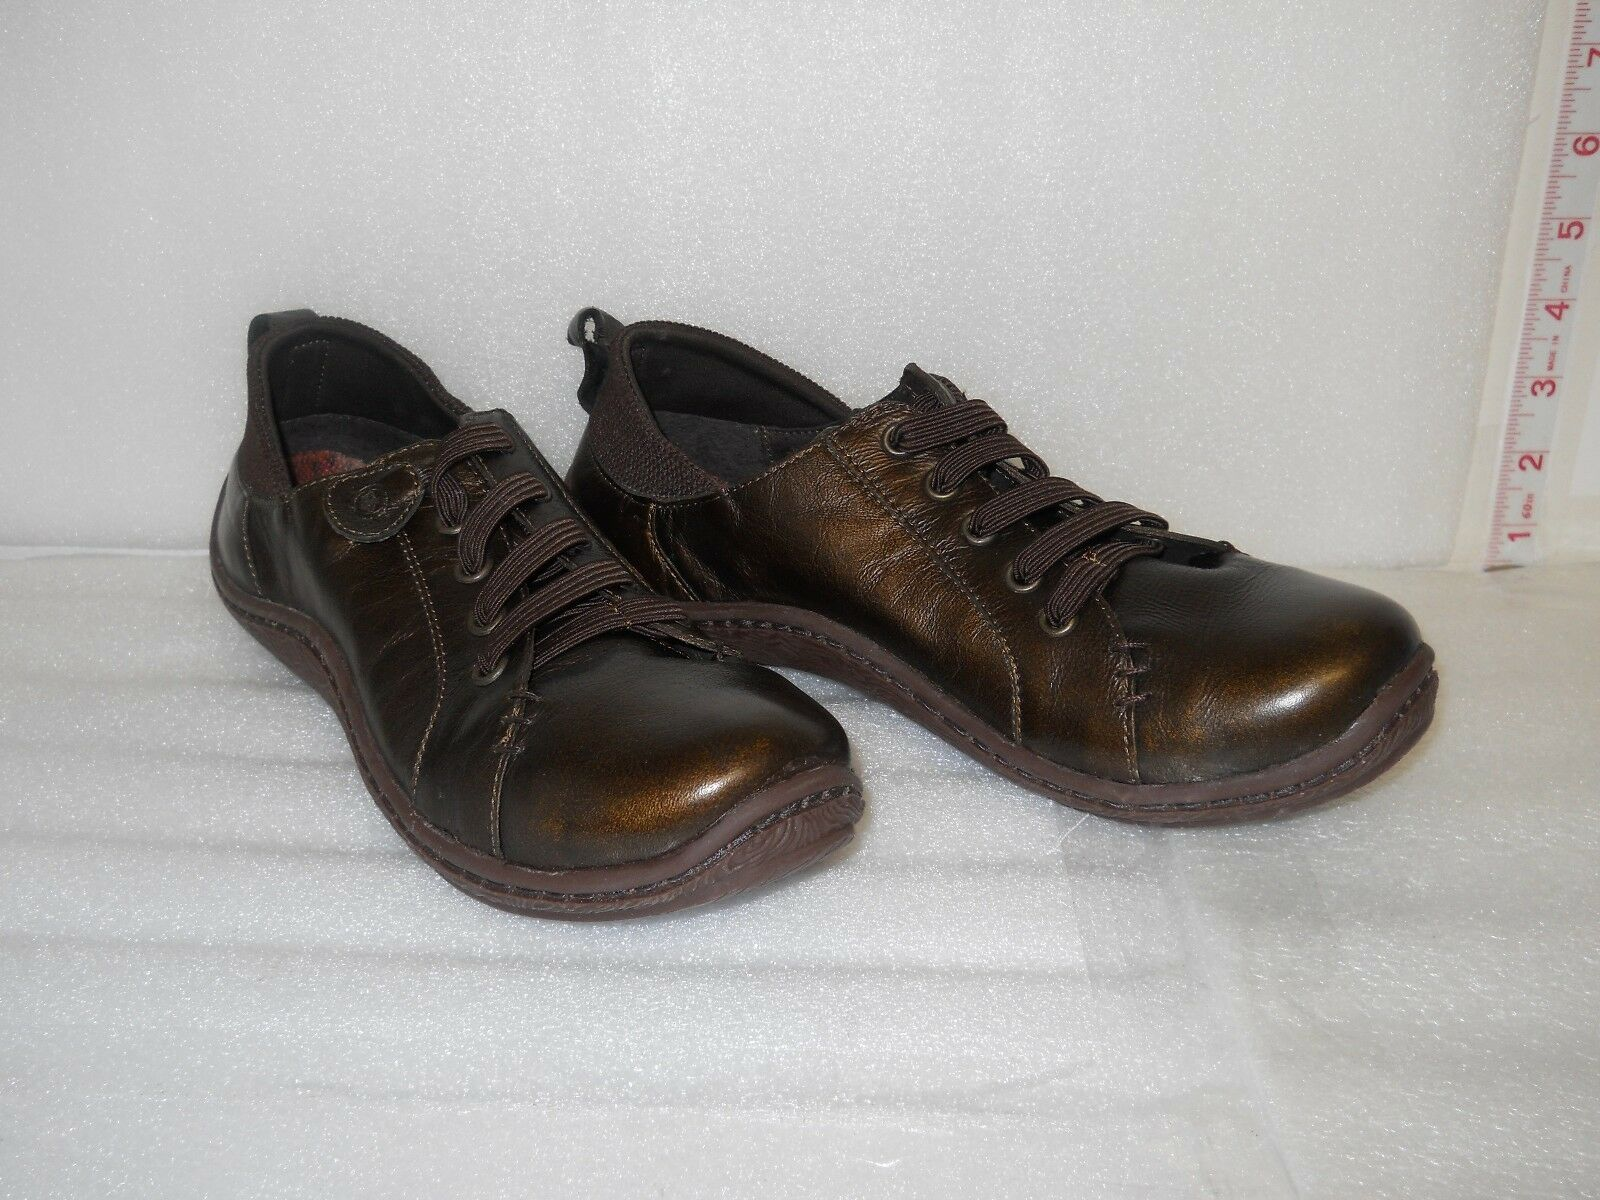 Born New Womens Womens Womens Althea Bronze Leather Sneakers 8 M shoes NWOB 20dbaf